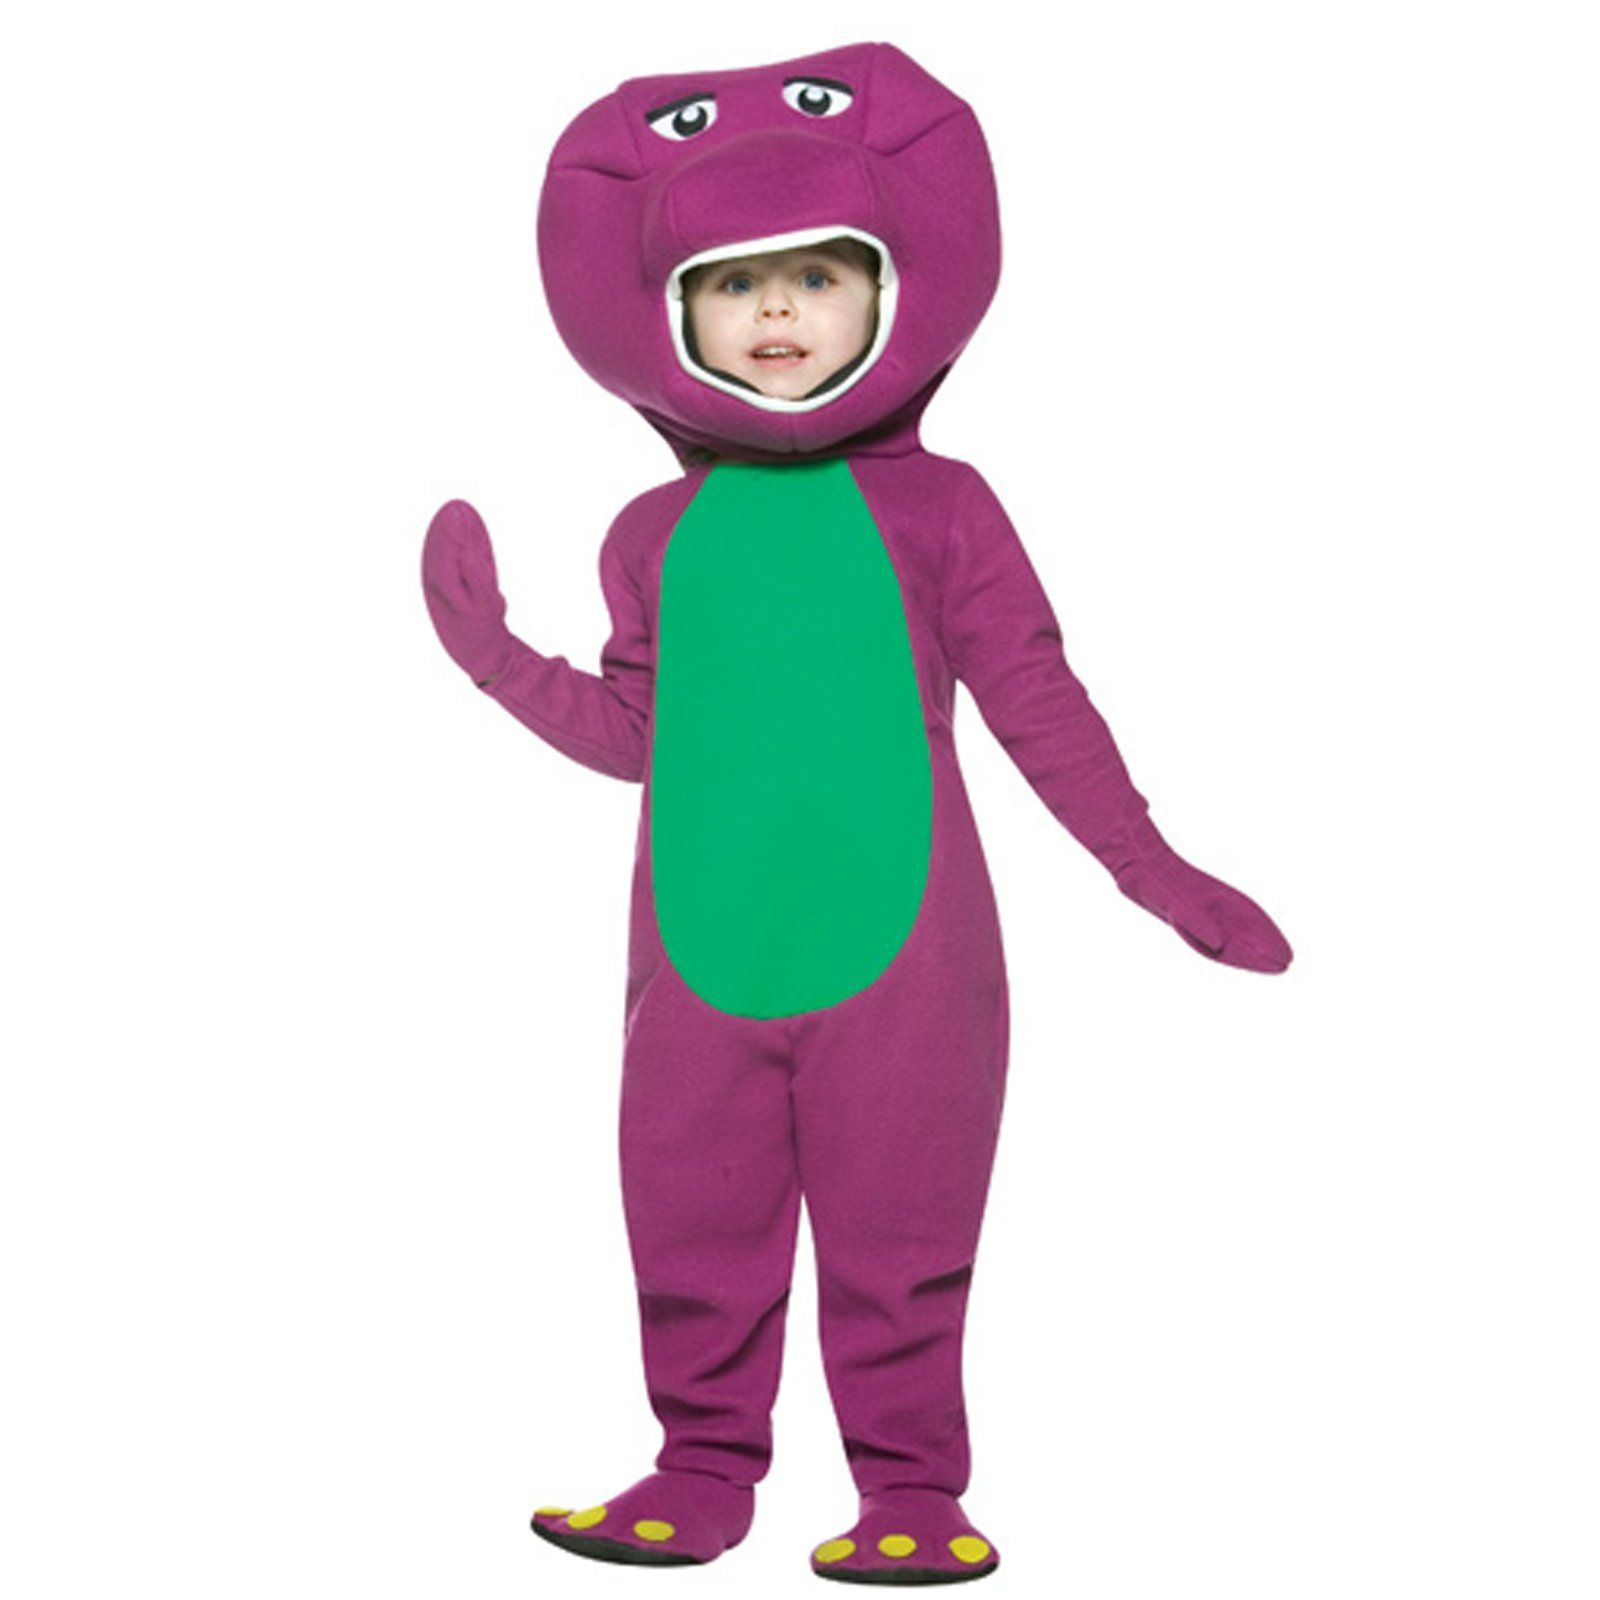 barney the dinosaur vhs products i love pinterest